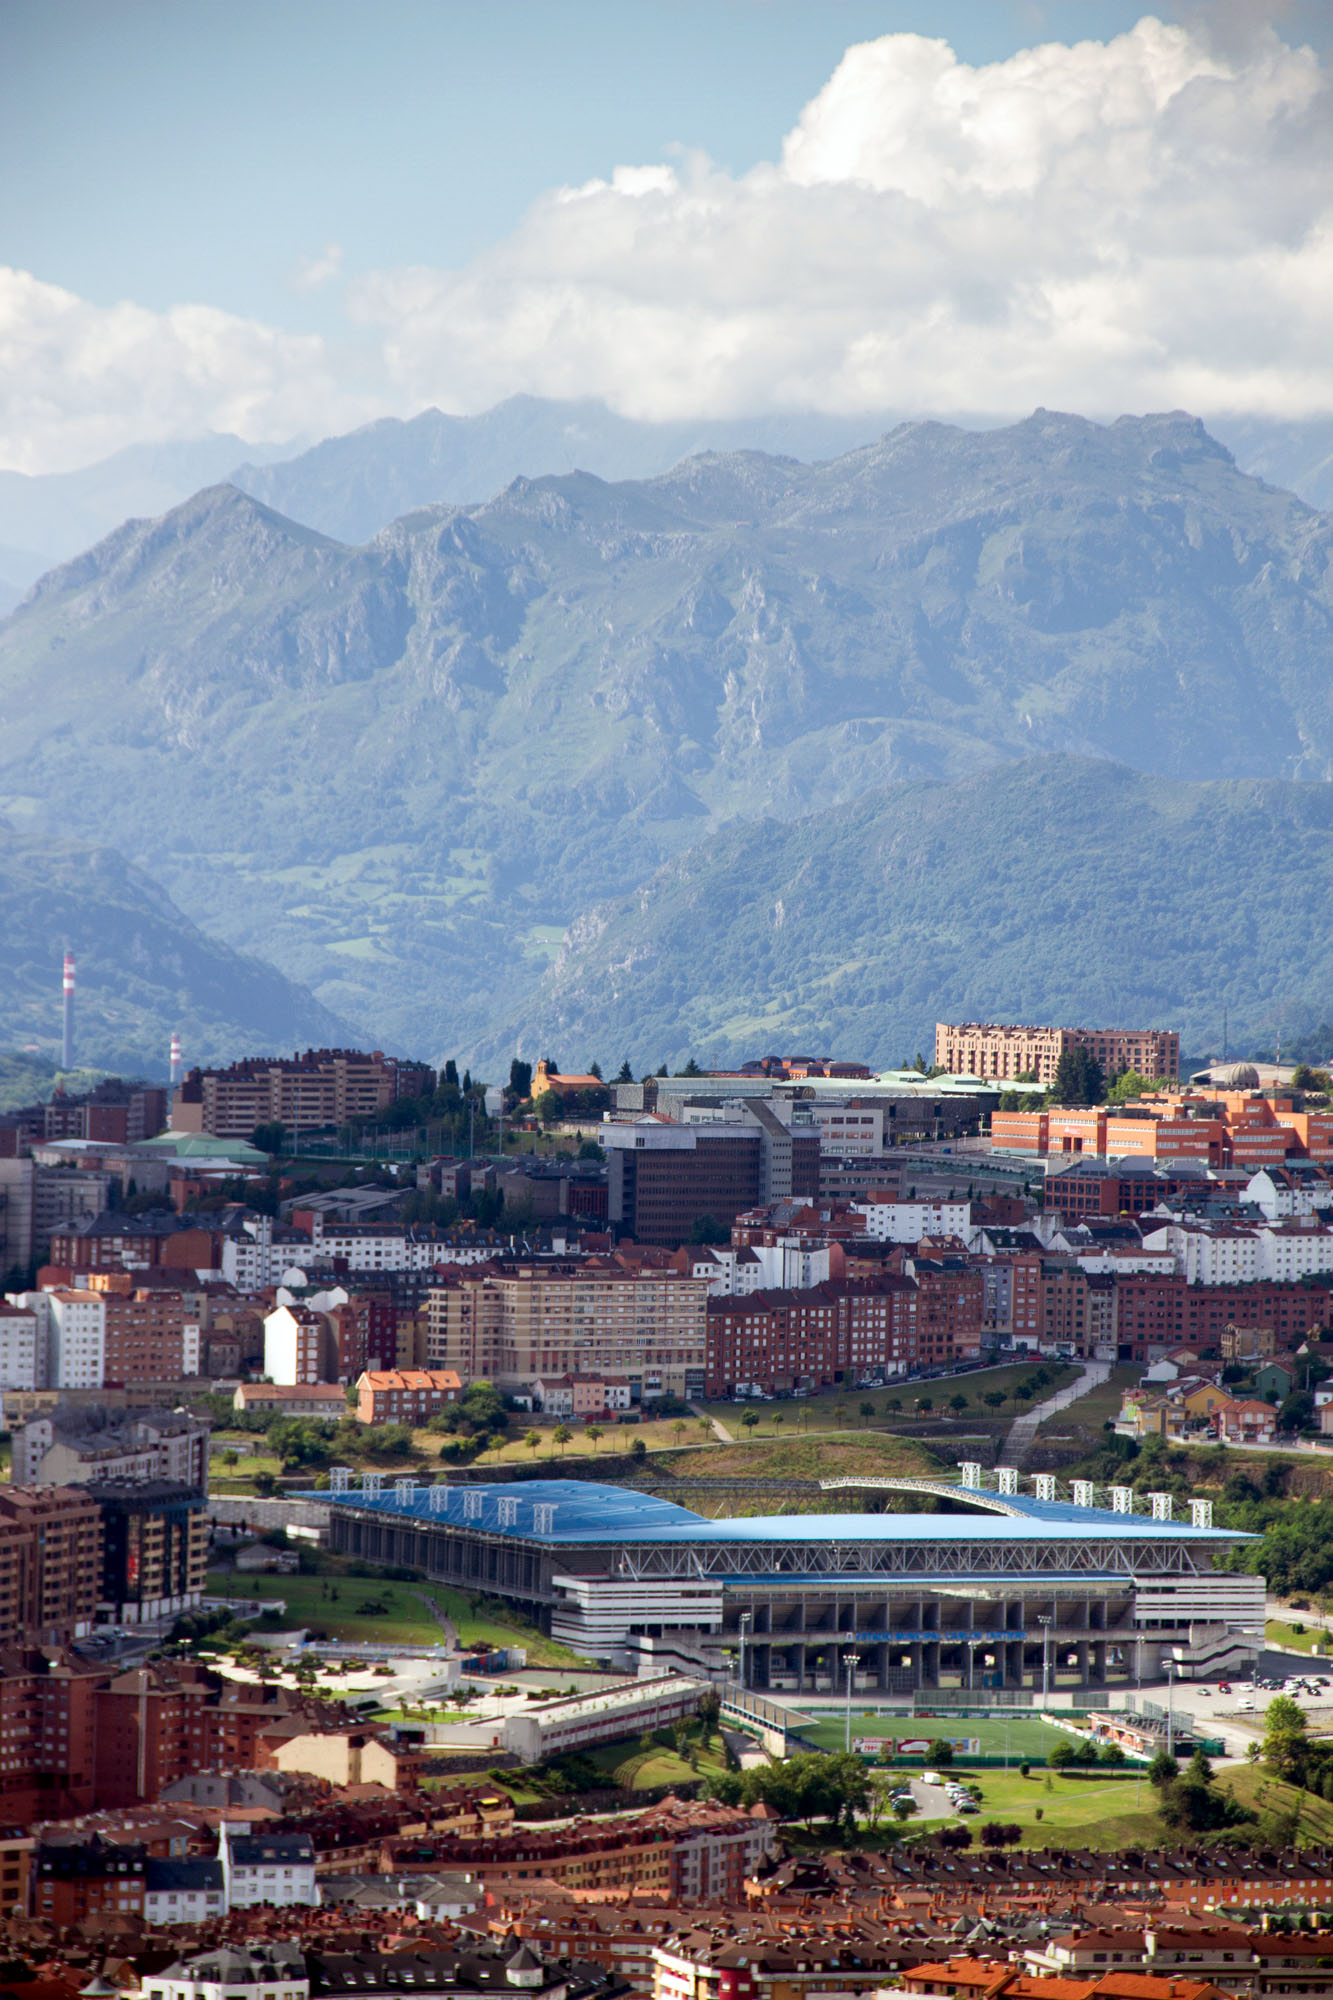 Carlos Tertiere Stadium Stock photo seen from a distance, Oviedo - Spain